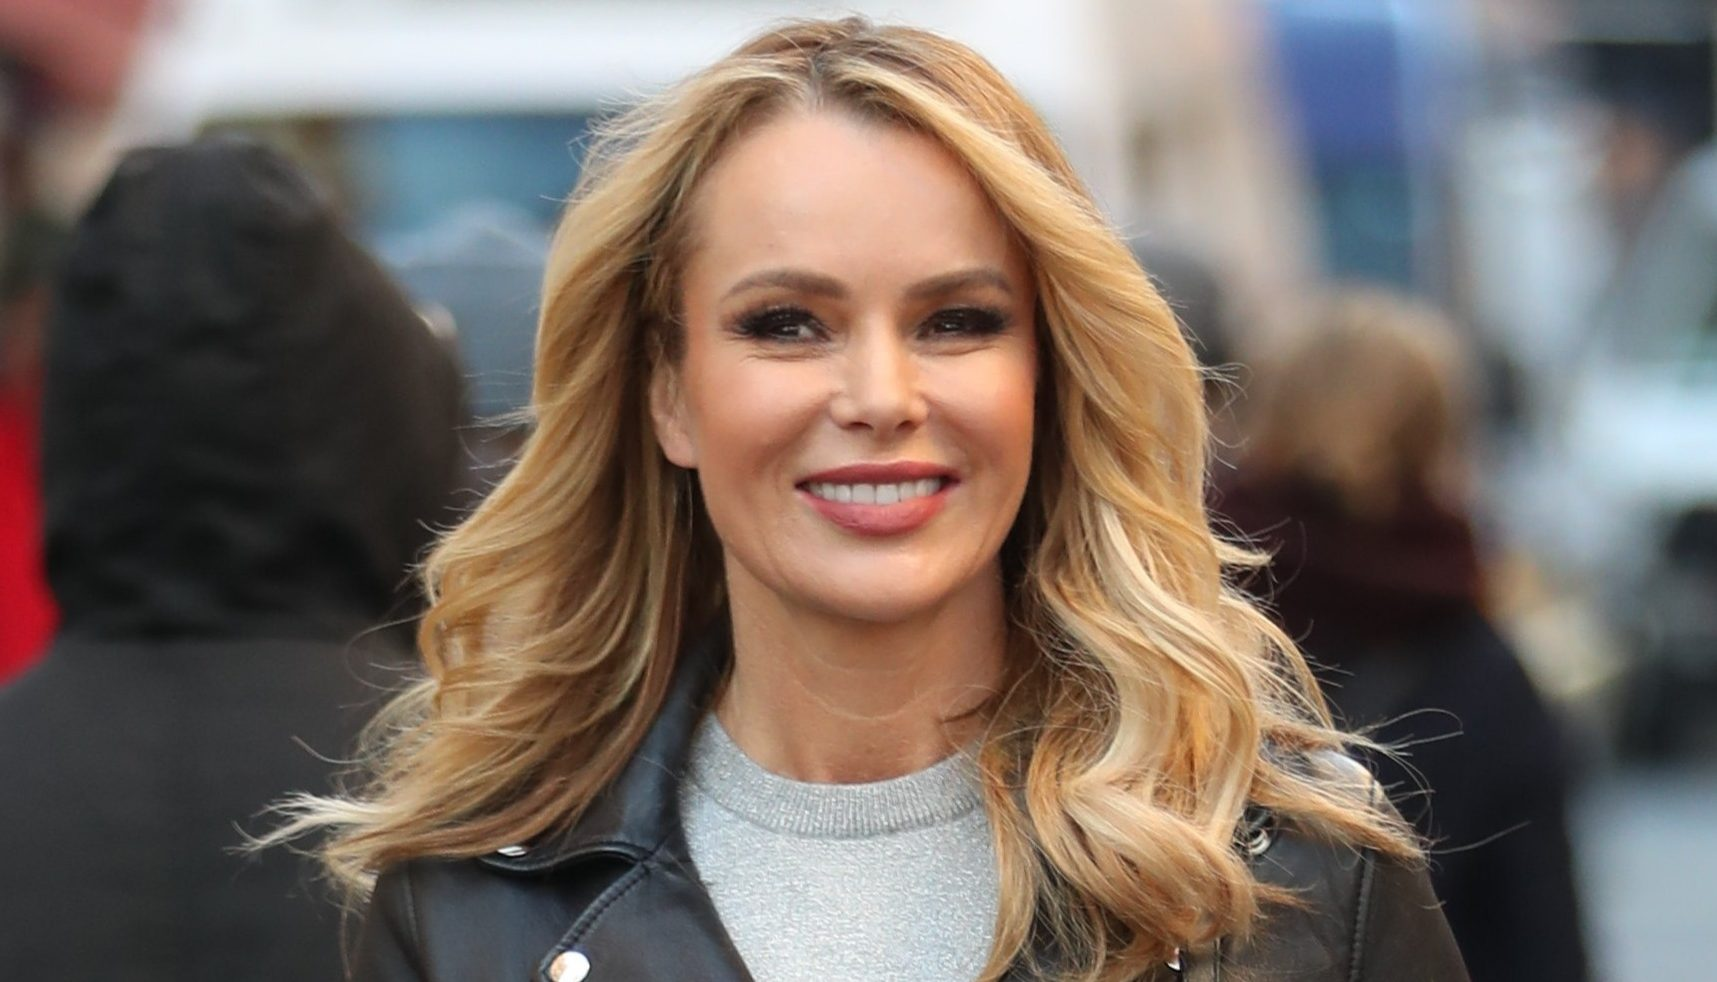 Amanda Holden reportedly set to sign £3million Britain's Got Talent contract